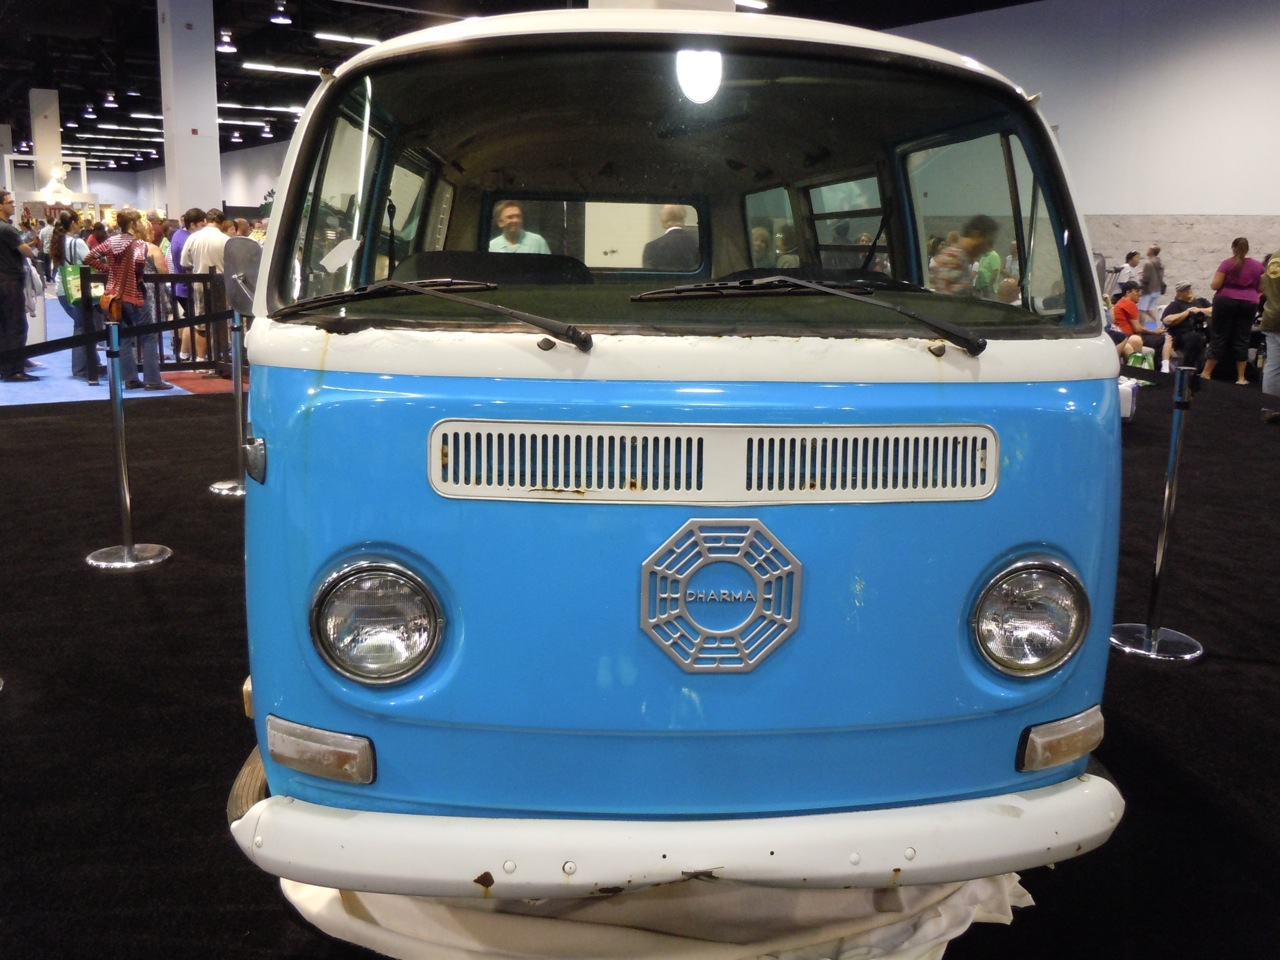 Hollywood Movie Costumes And Props Dharma Initiative Vw